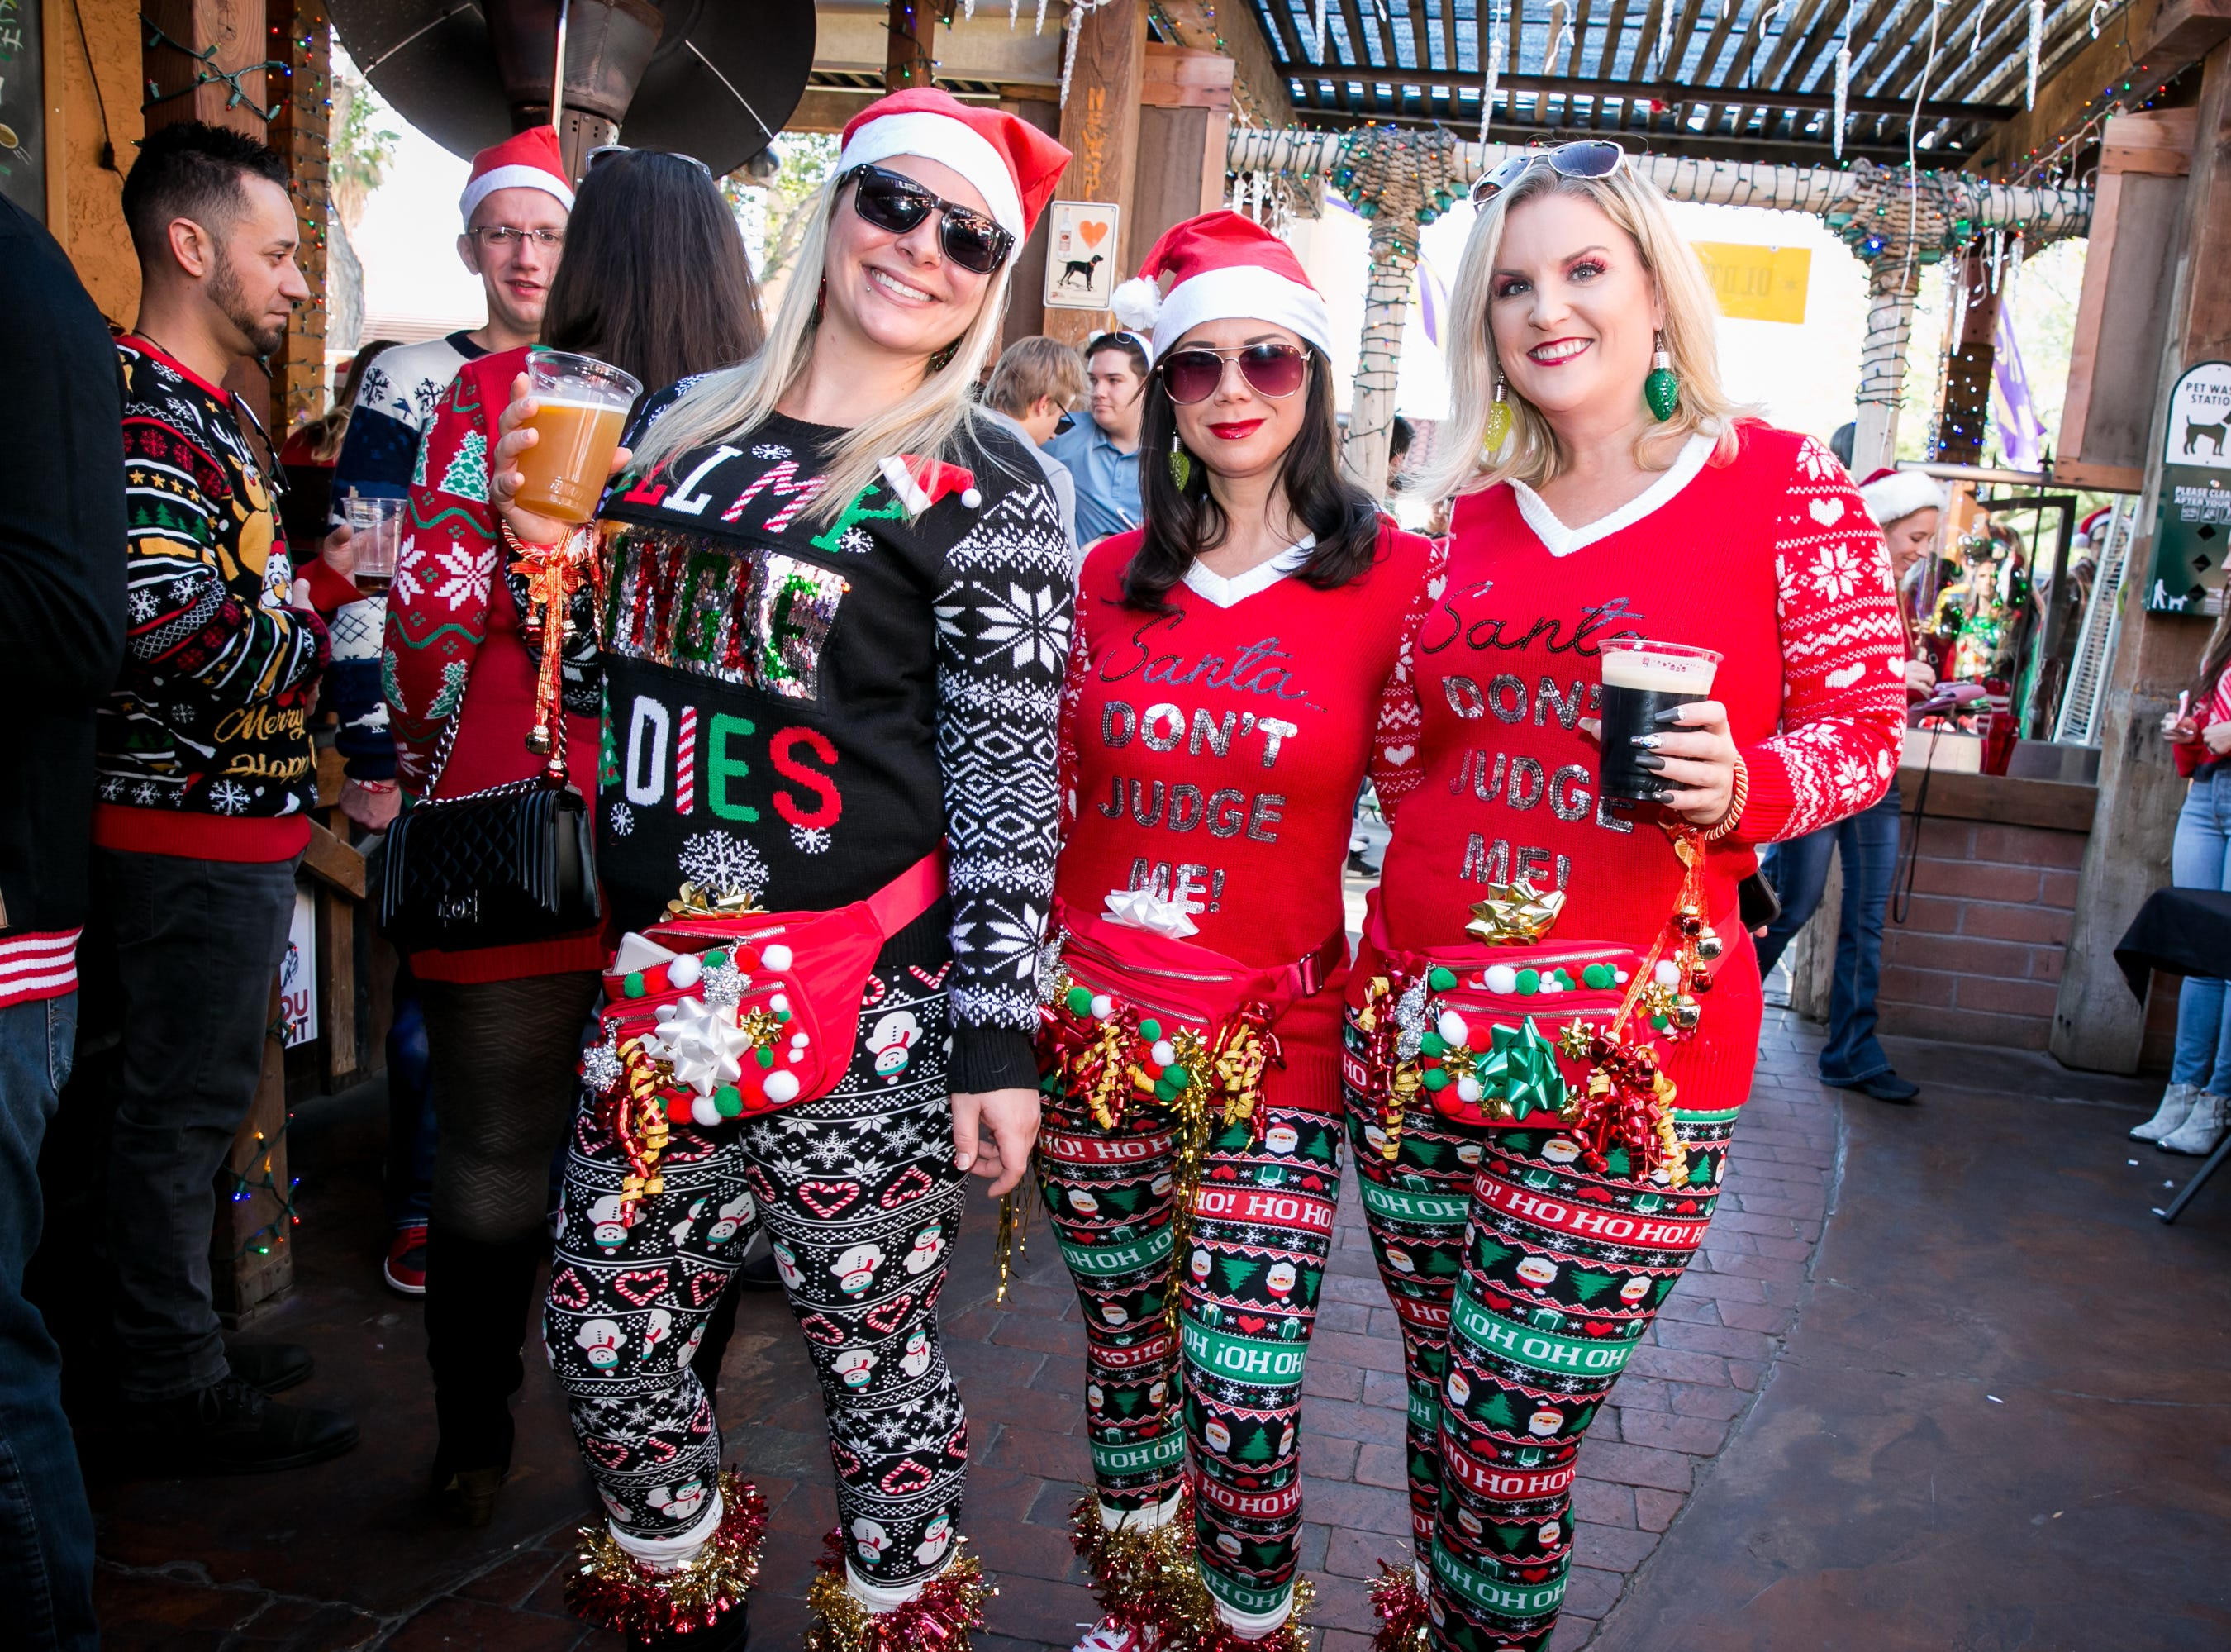 These ladies looked great during the Scottsdale Santa Crawl at Old Town Gringos on Saturday, December 8, 2018.